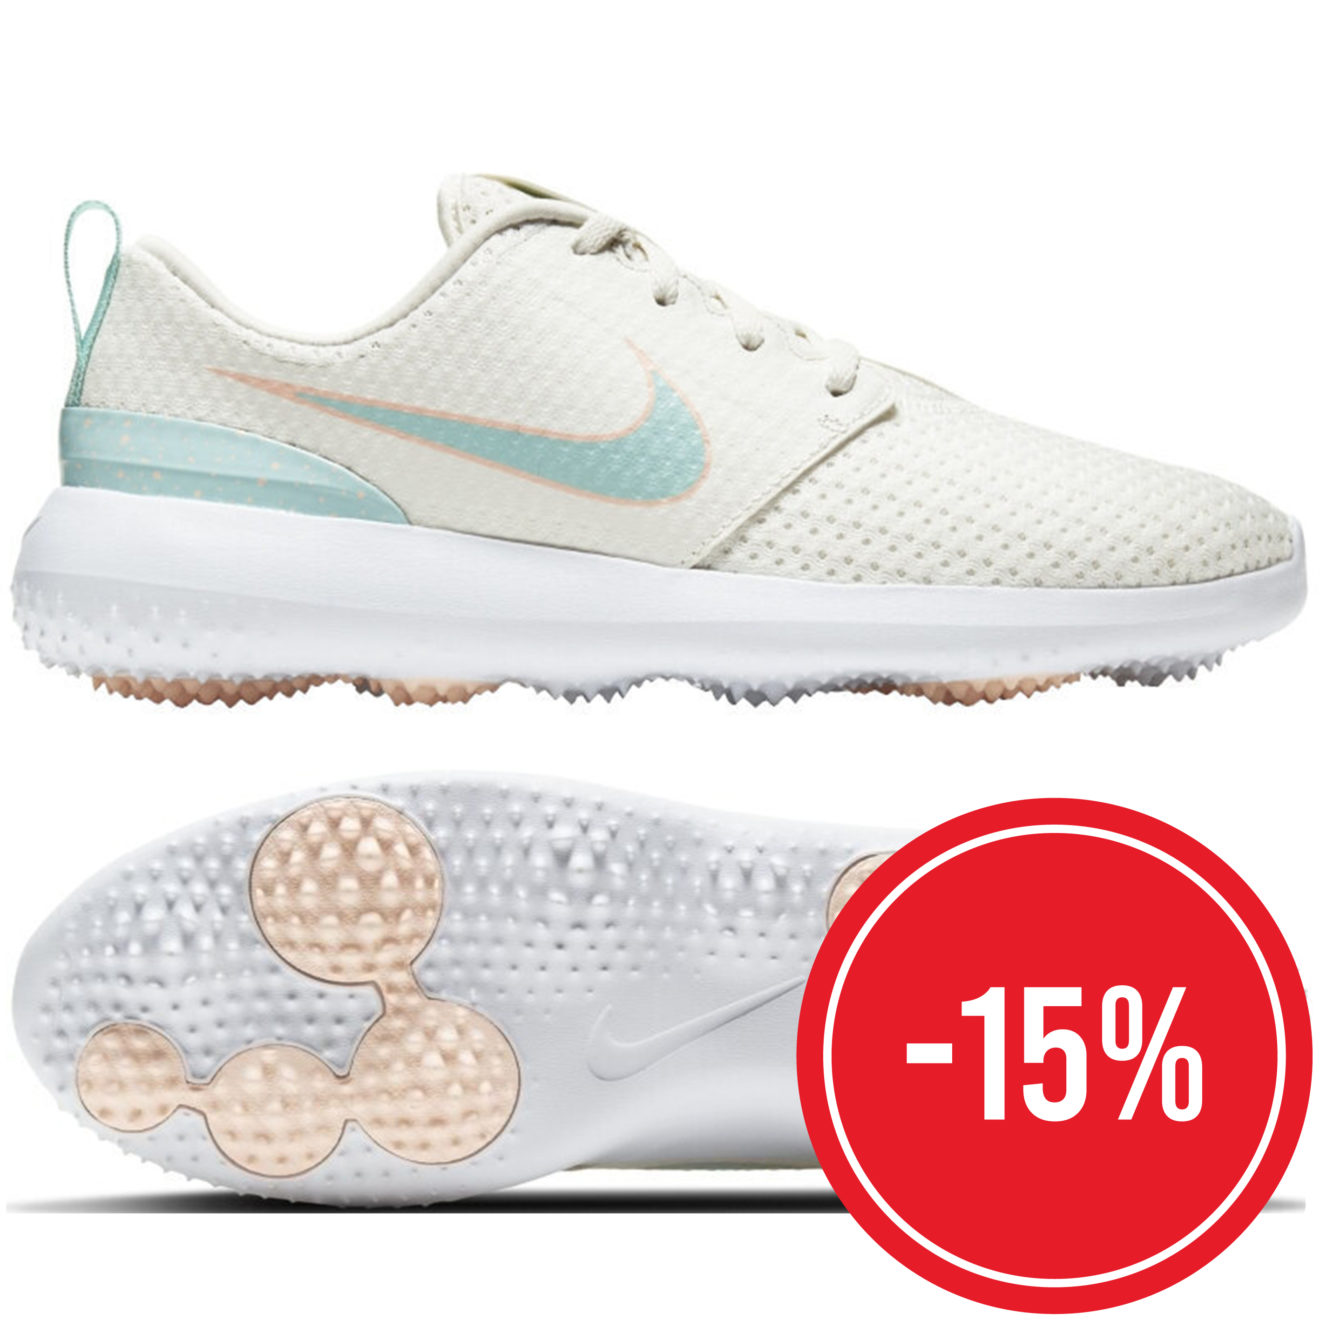 15_chaussures_nike